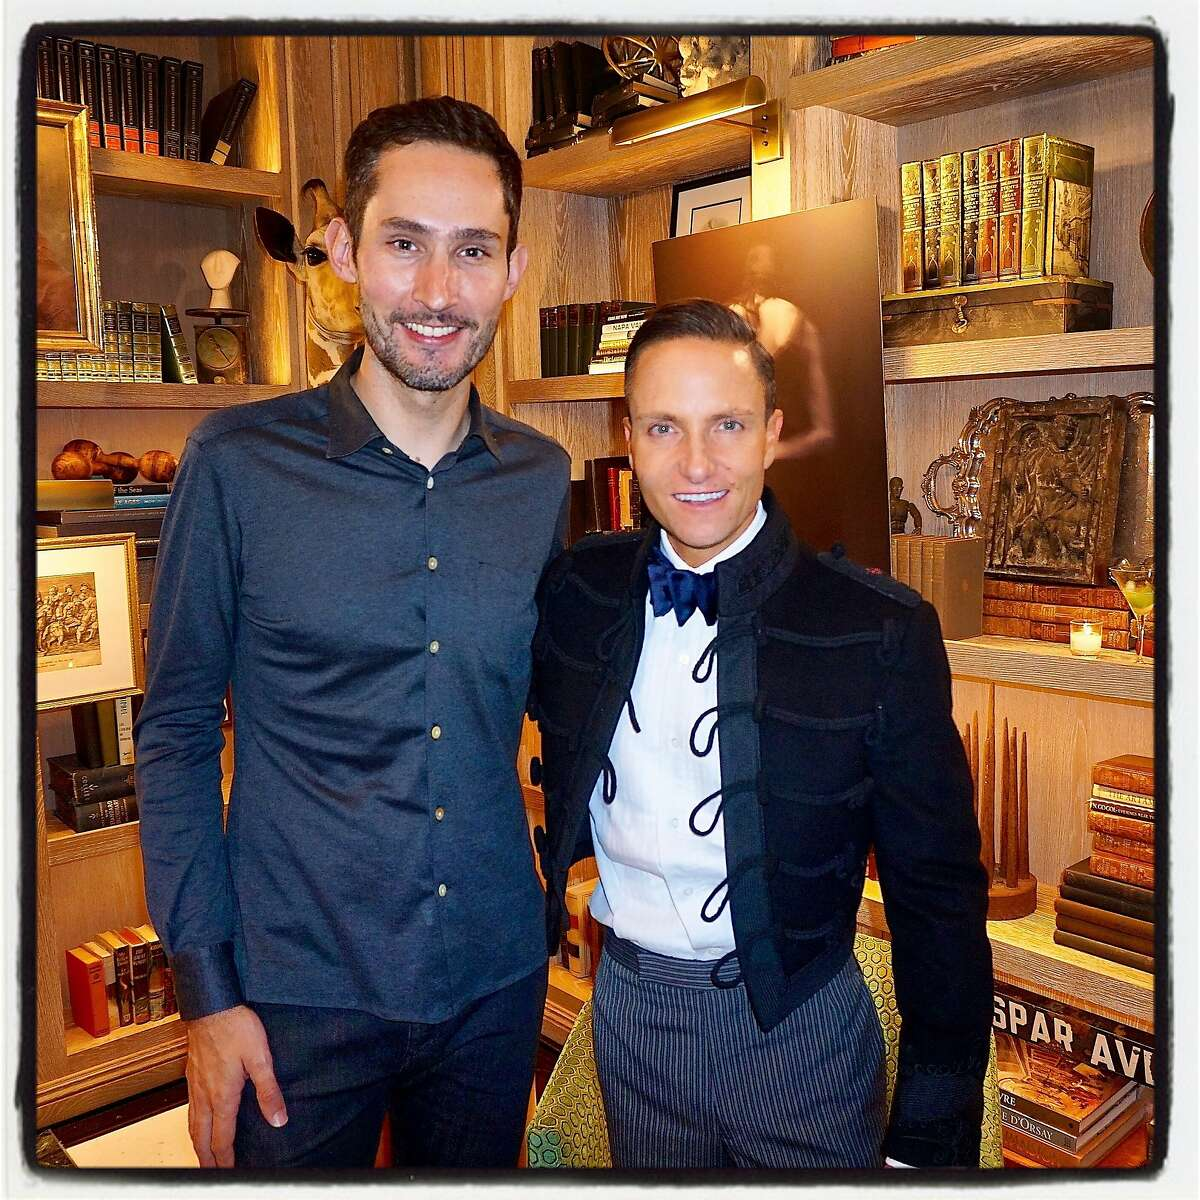 Instagram cofounder Kevin Systrom (left) cohosted a book launch party for designer Ken Fulk at The Harrison. Oct 2016.